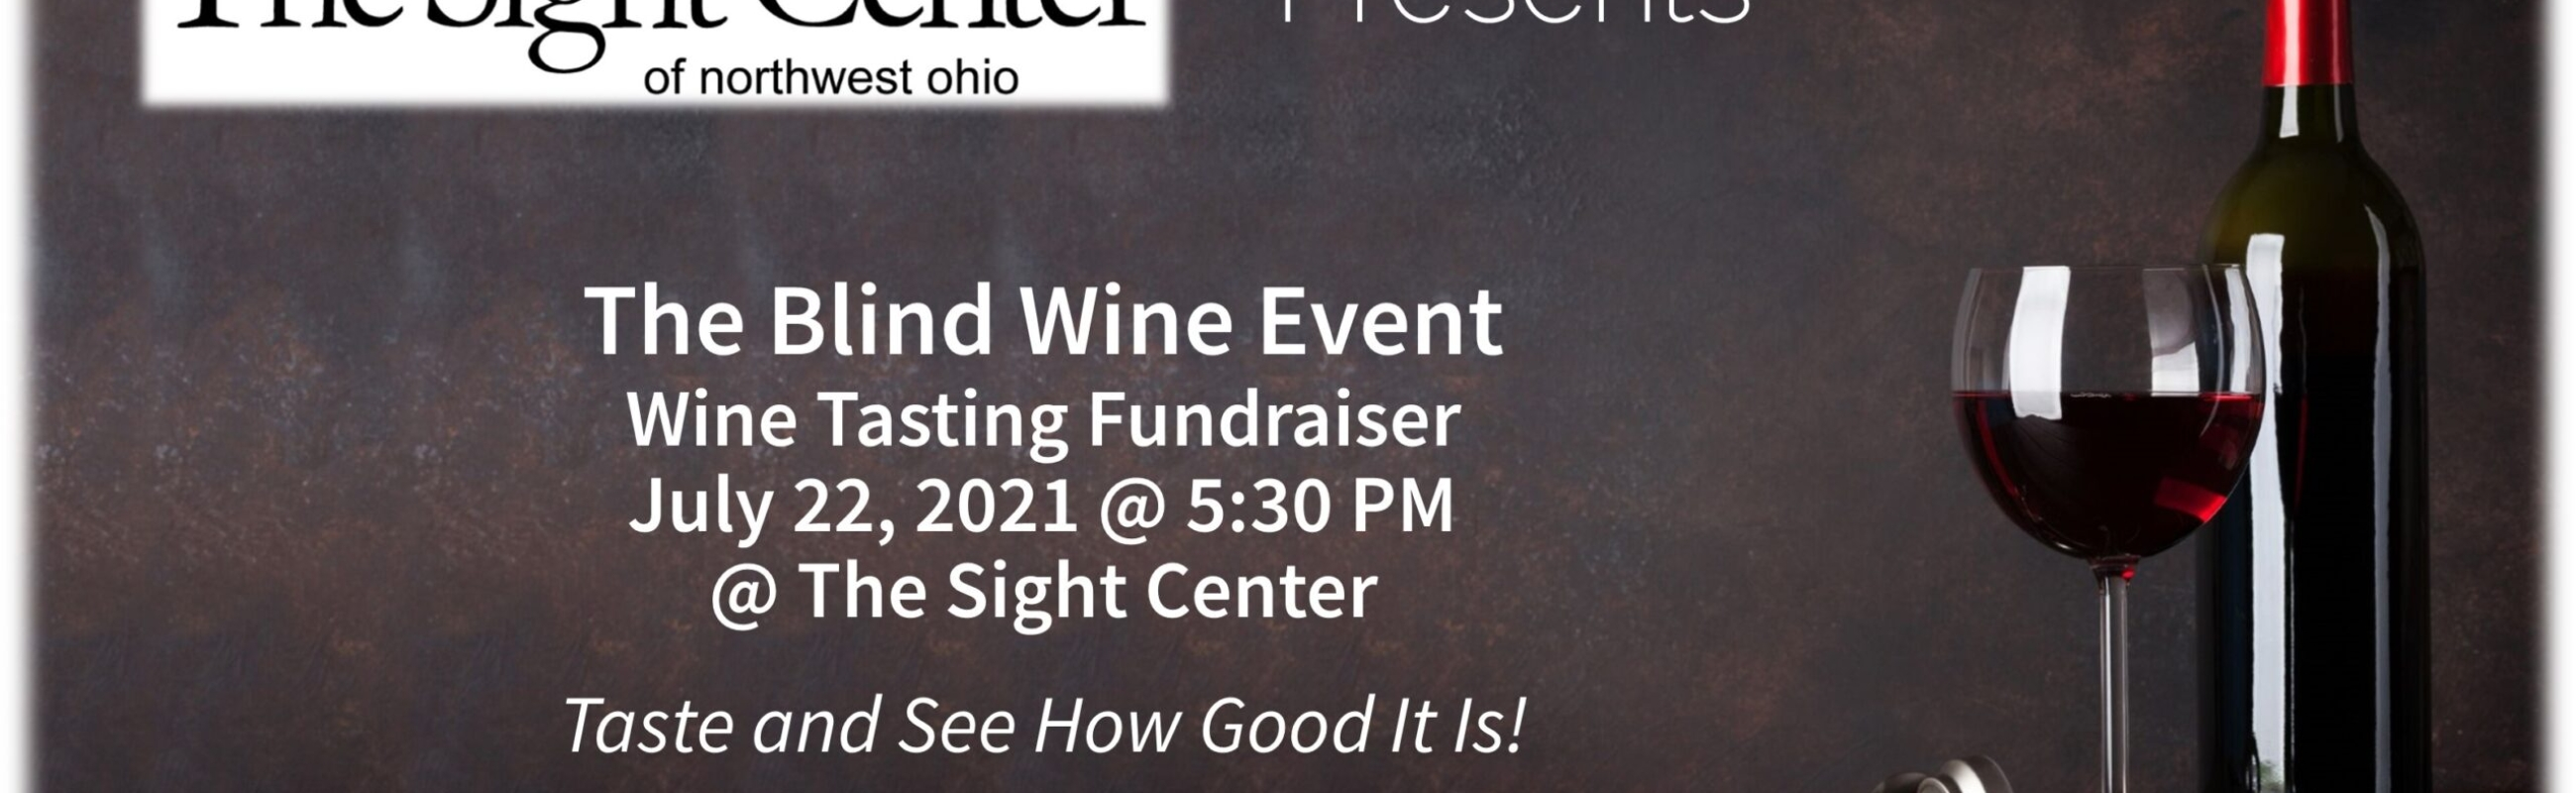 The Blind Wine Fundraiser - July 22 at The Sight Center